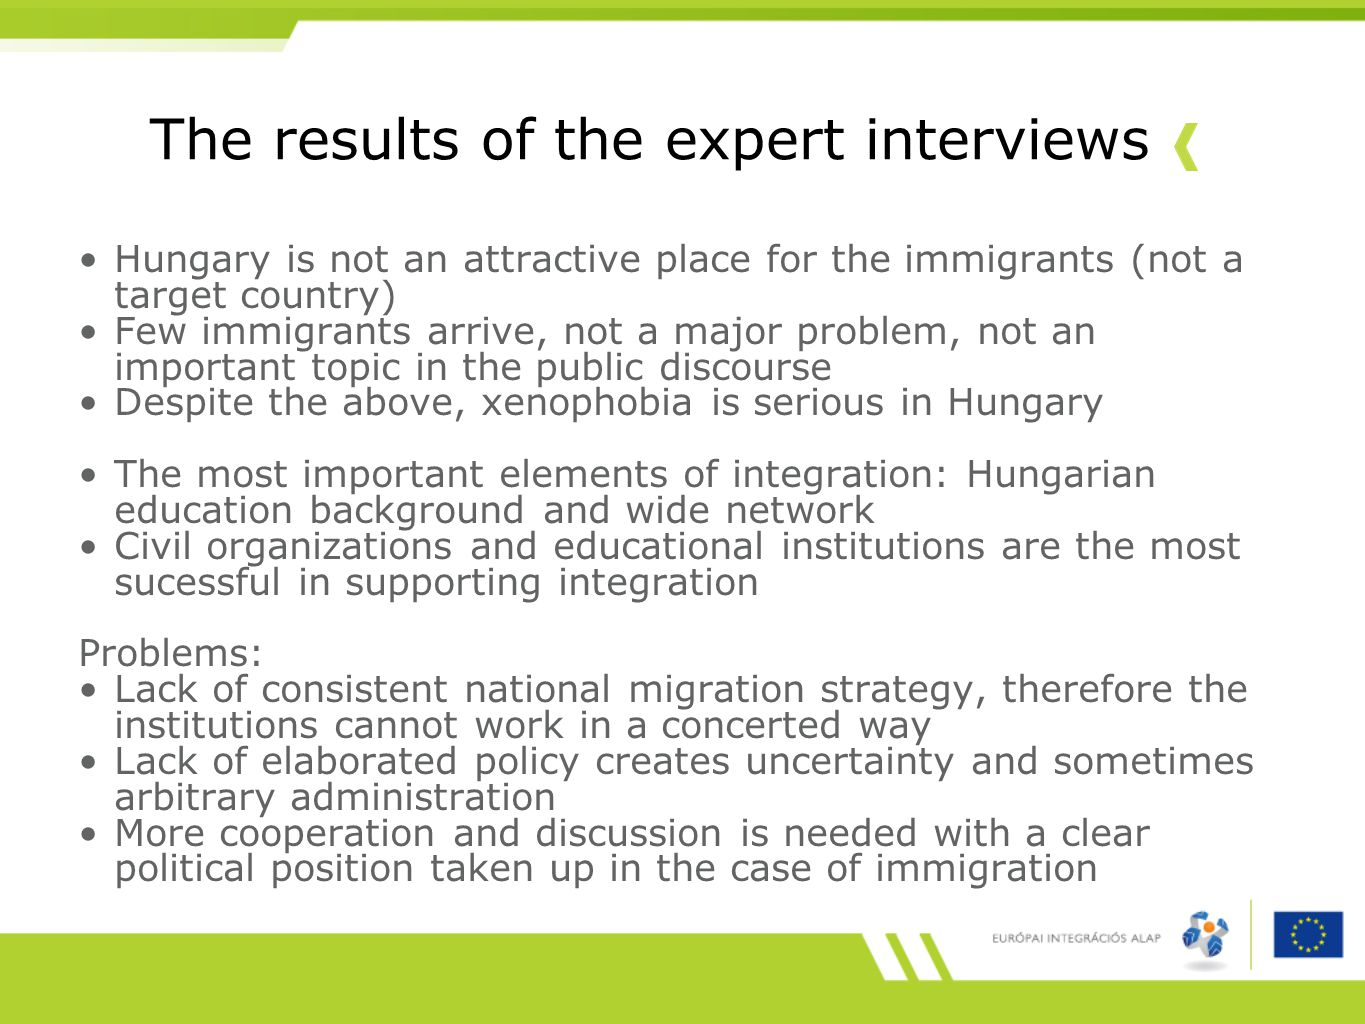 The results of the expert interviews Hungary is not an attractive place for the immigrants (not a target country) Few immigrants arrive, not a major problem, not an important topic in the public discourse Despite the above, xenophobia is serious in Hungary The most important elements of integration: Hungarian education background and wide network Civil organizations and educational institutions are the most sucessful in supporting integration Problems: Lack of consistent national migration strategy, therefore the institutions cannot work in a concerted way Lack of elaborated policy creates uncertainty and sometimes arbitrary administration More cooperation and discussion is needed with a clear political position taken up in the case of immigration